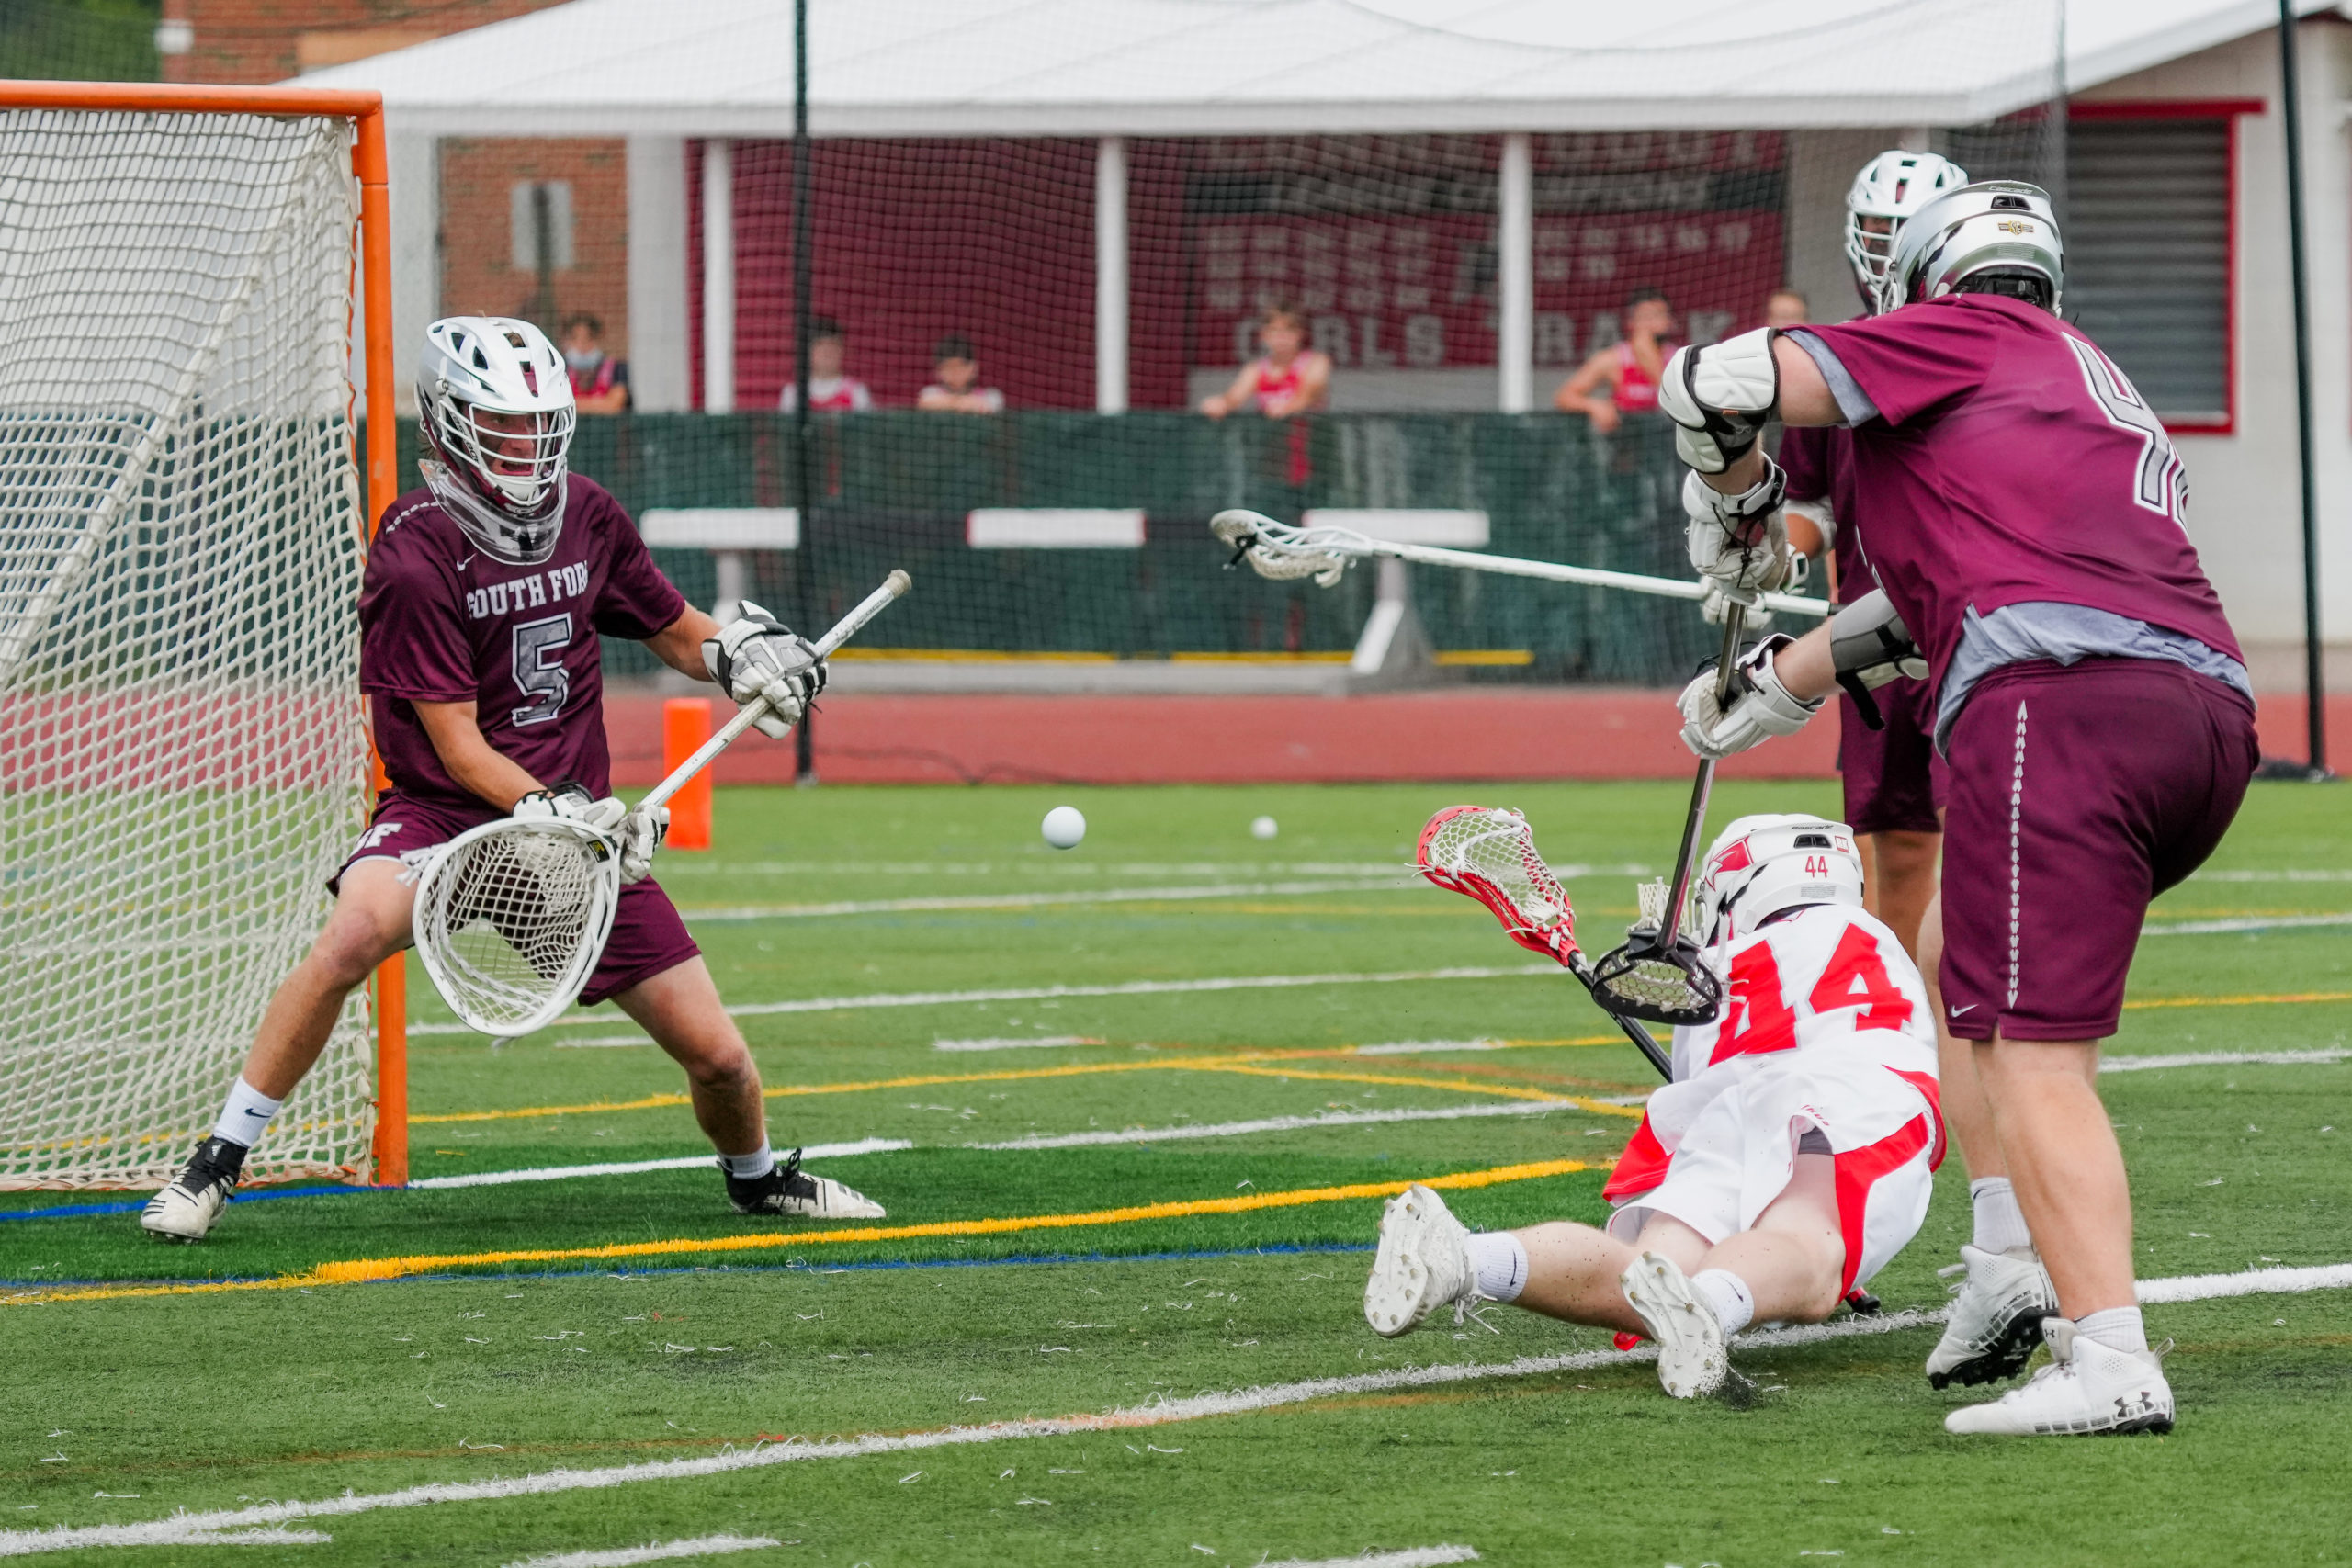 Pierson senior goalie Hudson Brindle gets ready to stop a shot from a Connetquot player.